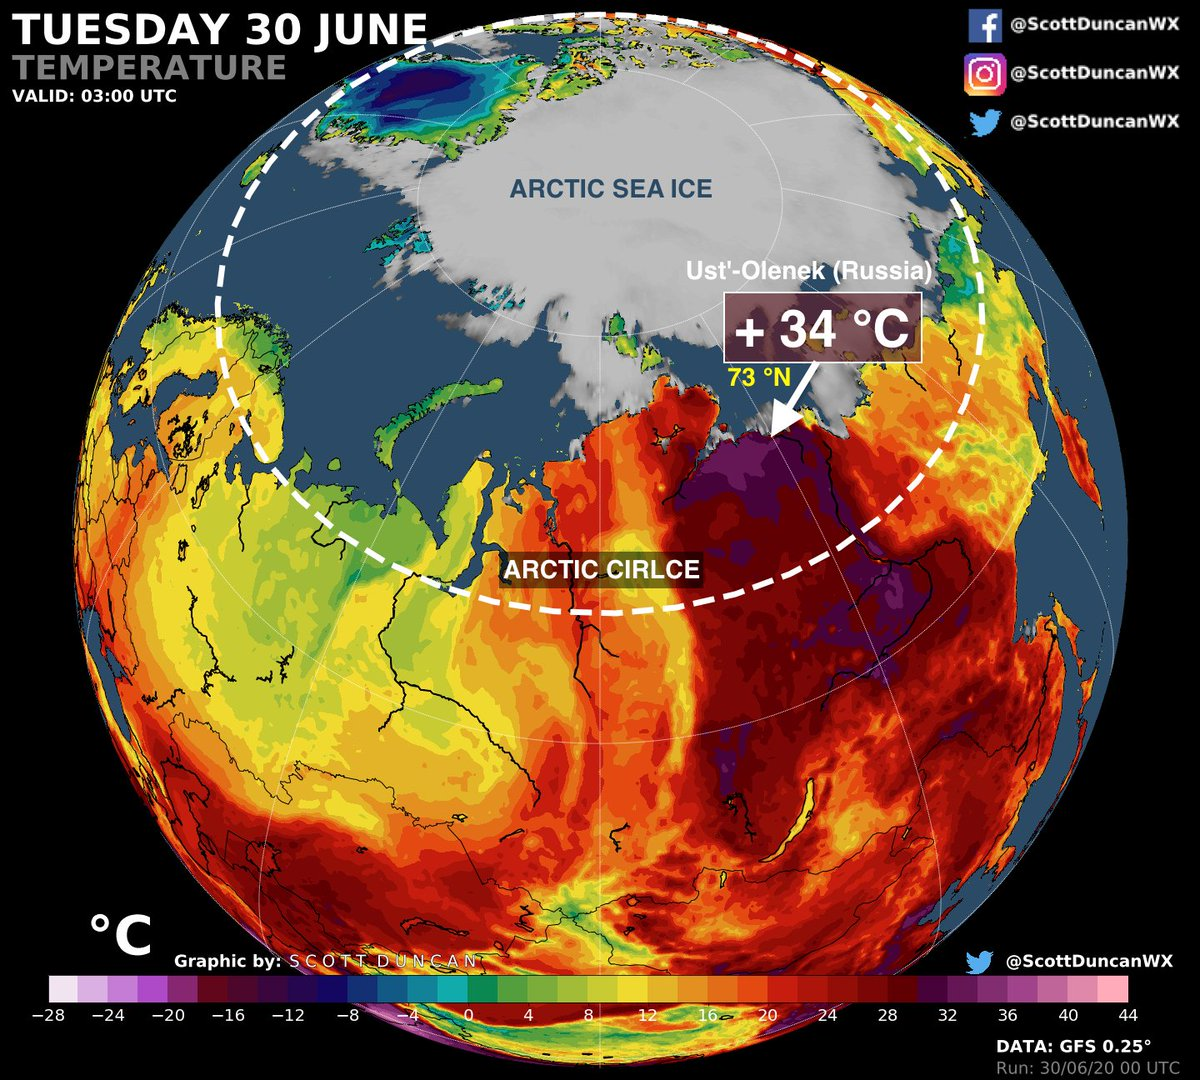 Extremely hot again on the fringe of the Arctic Ocean.  An astonishing + 34 °C has just been recorded at a latitude of 73 °N today in Russia. This is about + 20-25 °C warmer than normal.  Note how much open water there is compared to normal. Sea ice is taking a hit. https://t.co/y0w5PLjkHx